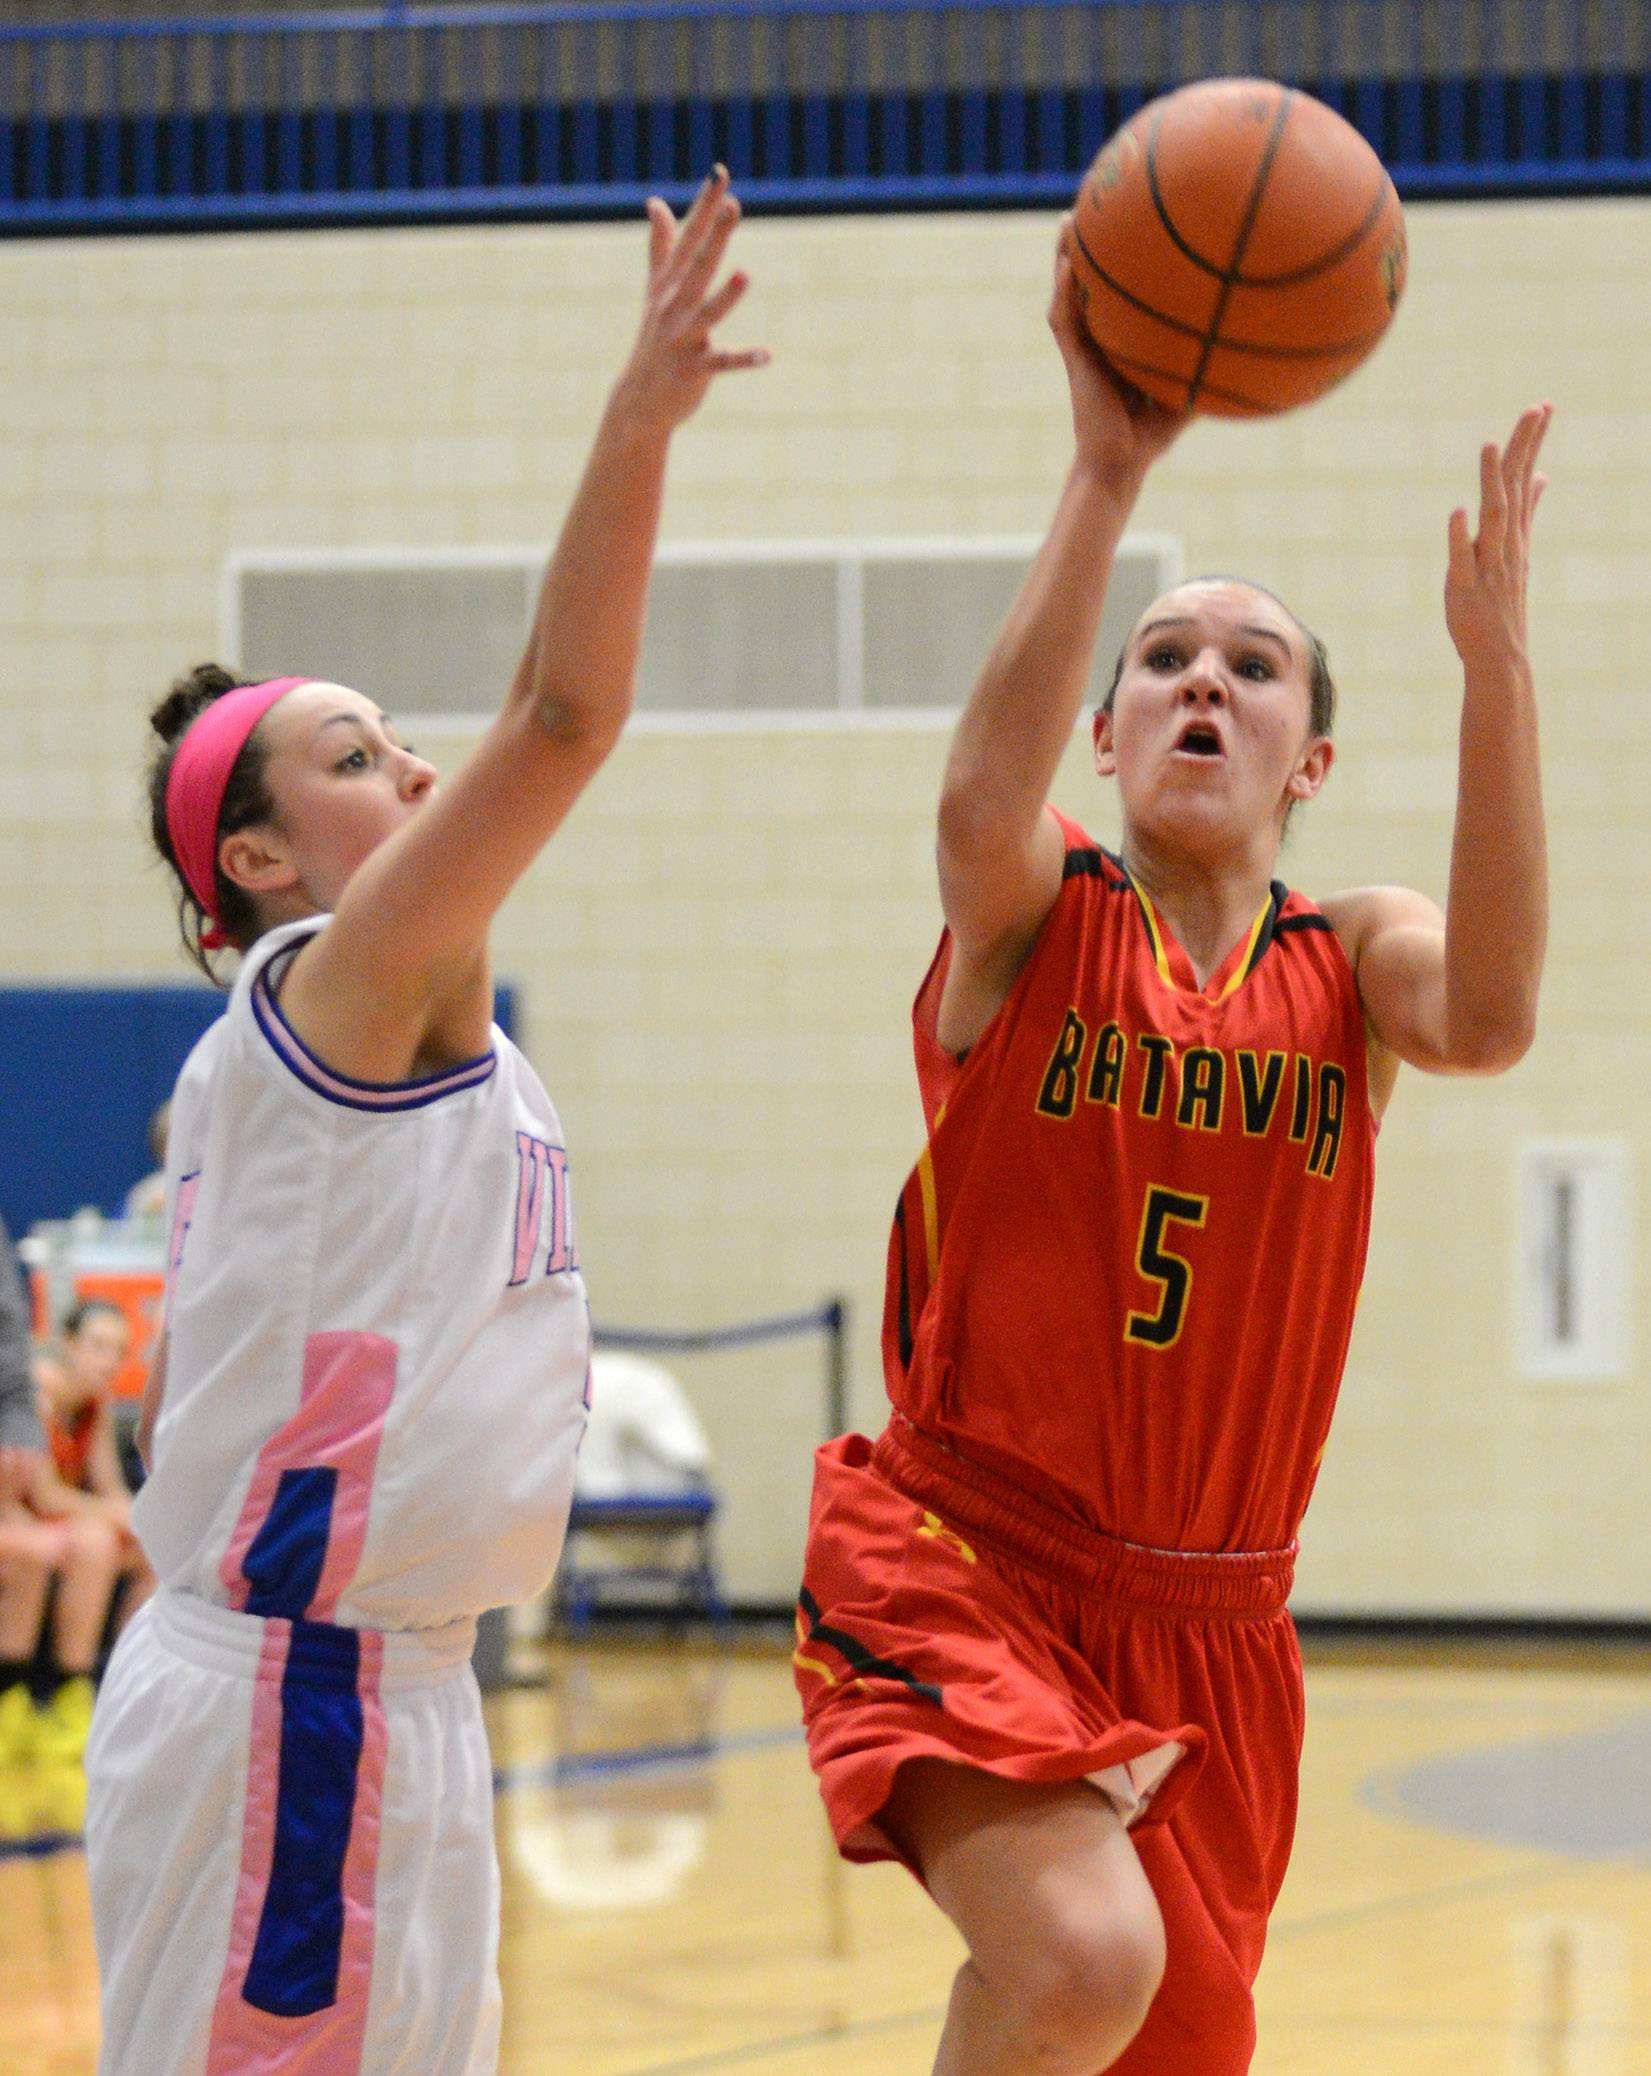 Batavia's Liza Fruendt drives for 2 of her school-record 51 points in a win at Geneva this year.